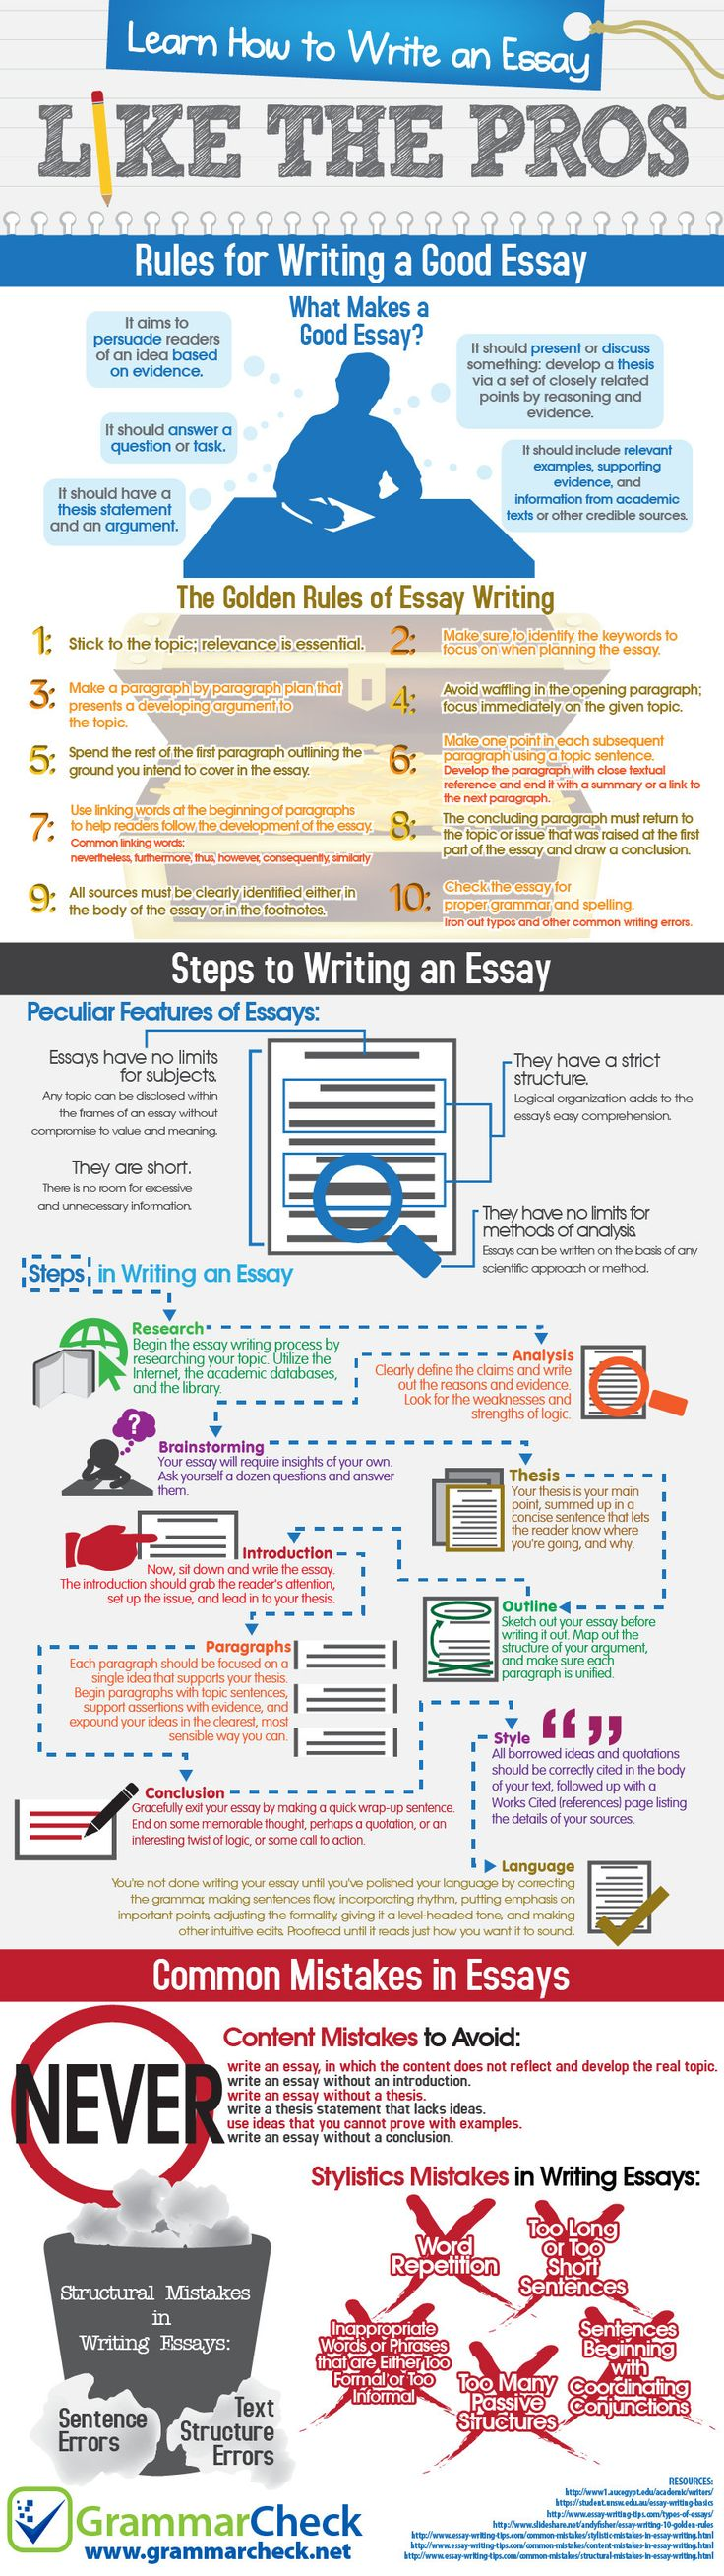 best ideas about good essay how to write essay rules for writing a good essay tackk